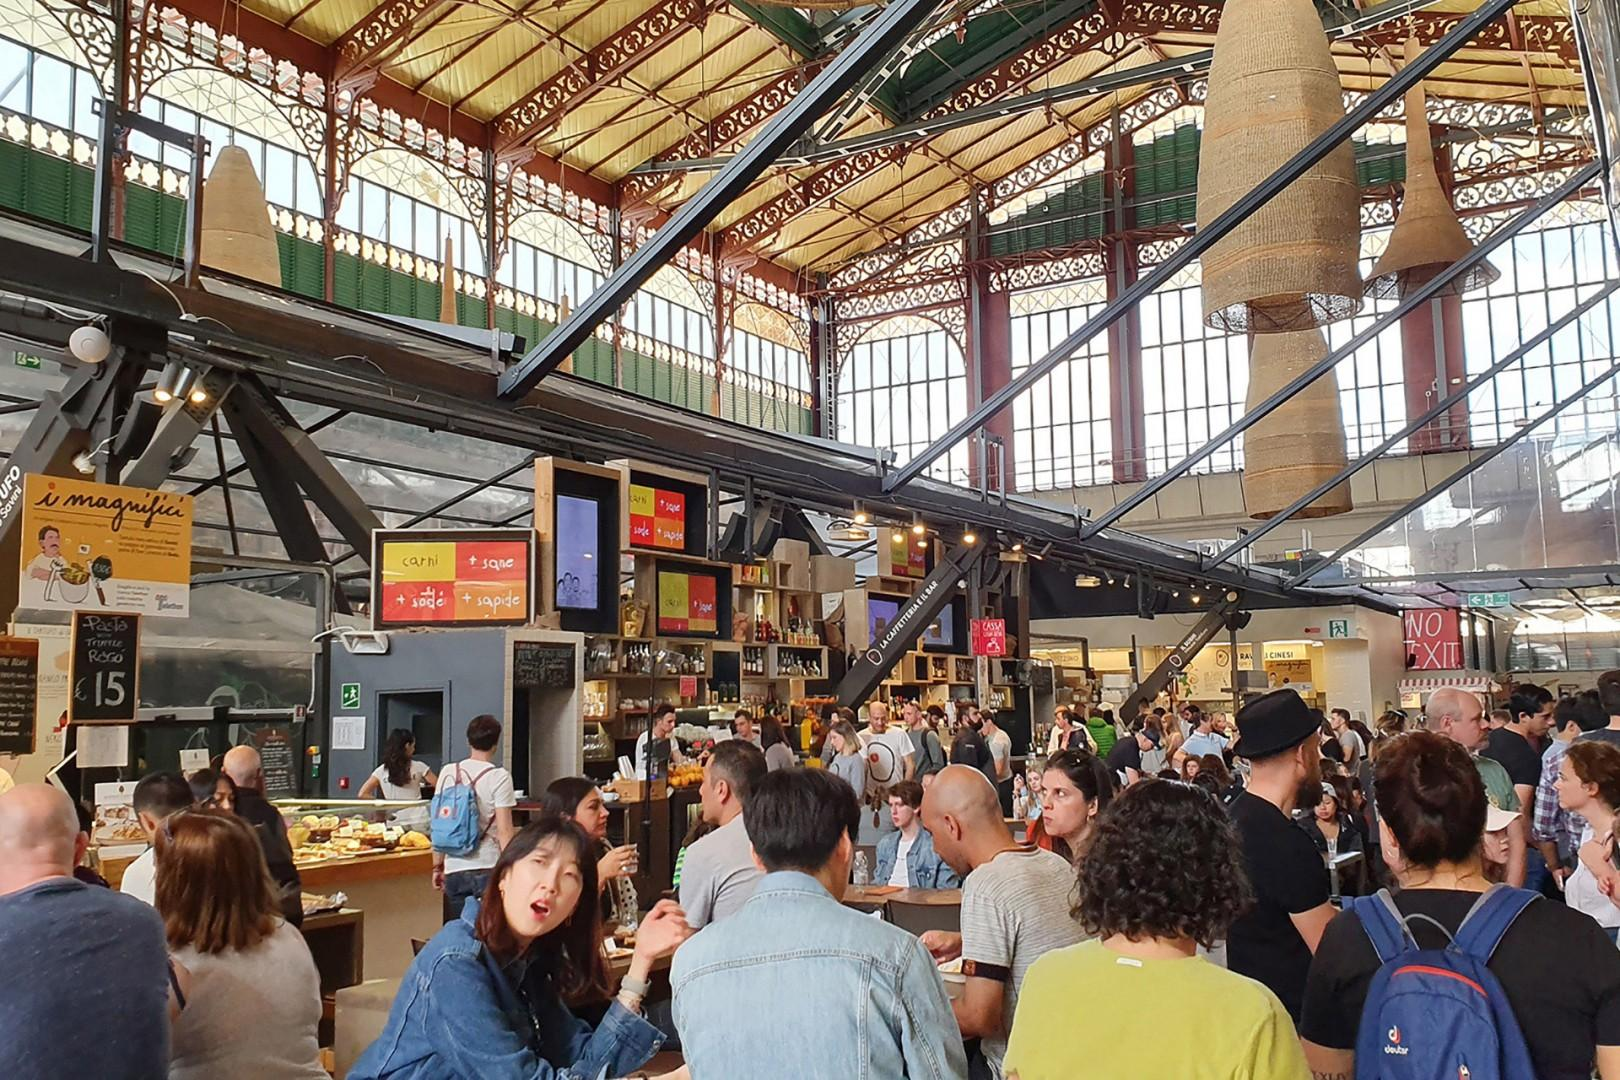 On the upper floor of the Mercato Centrale is a great food court.